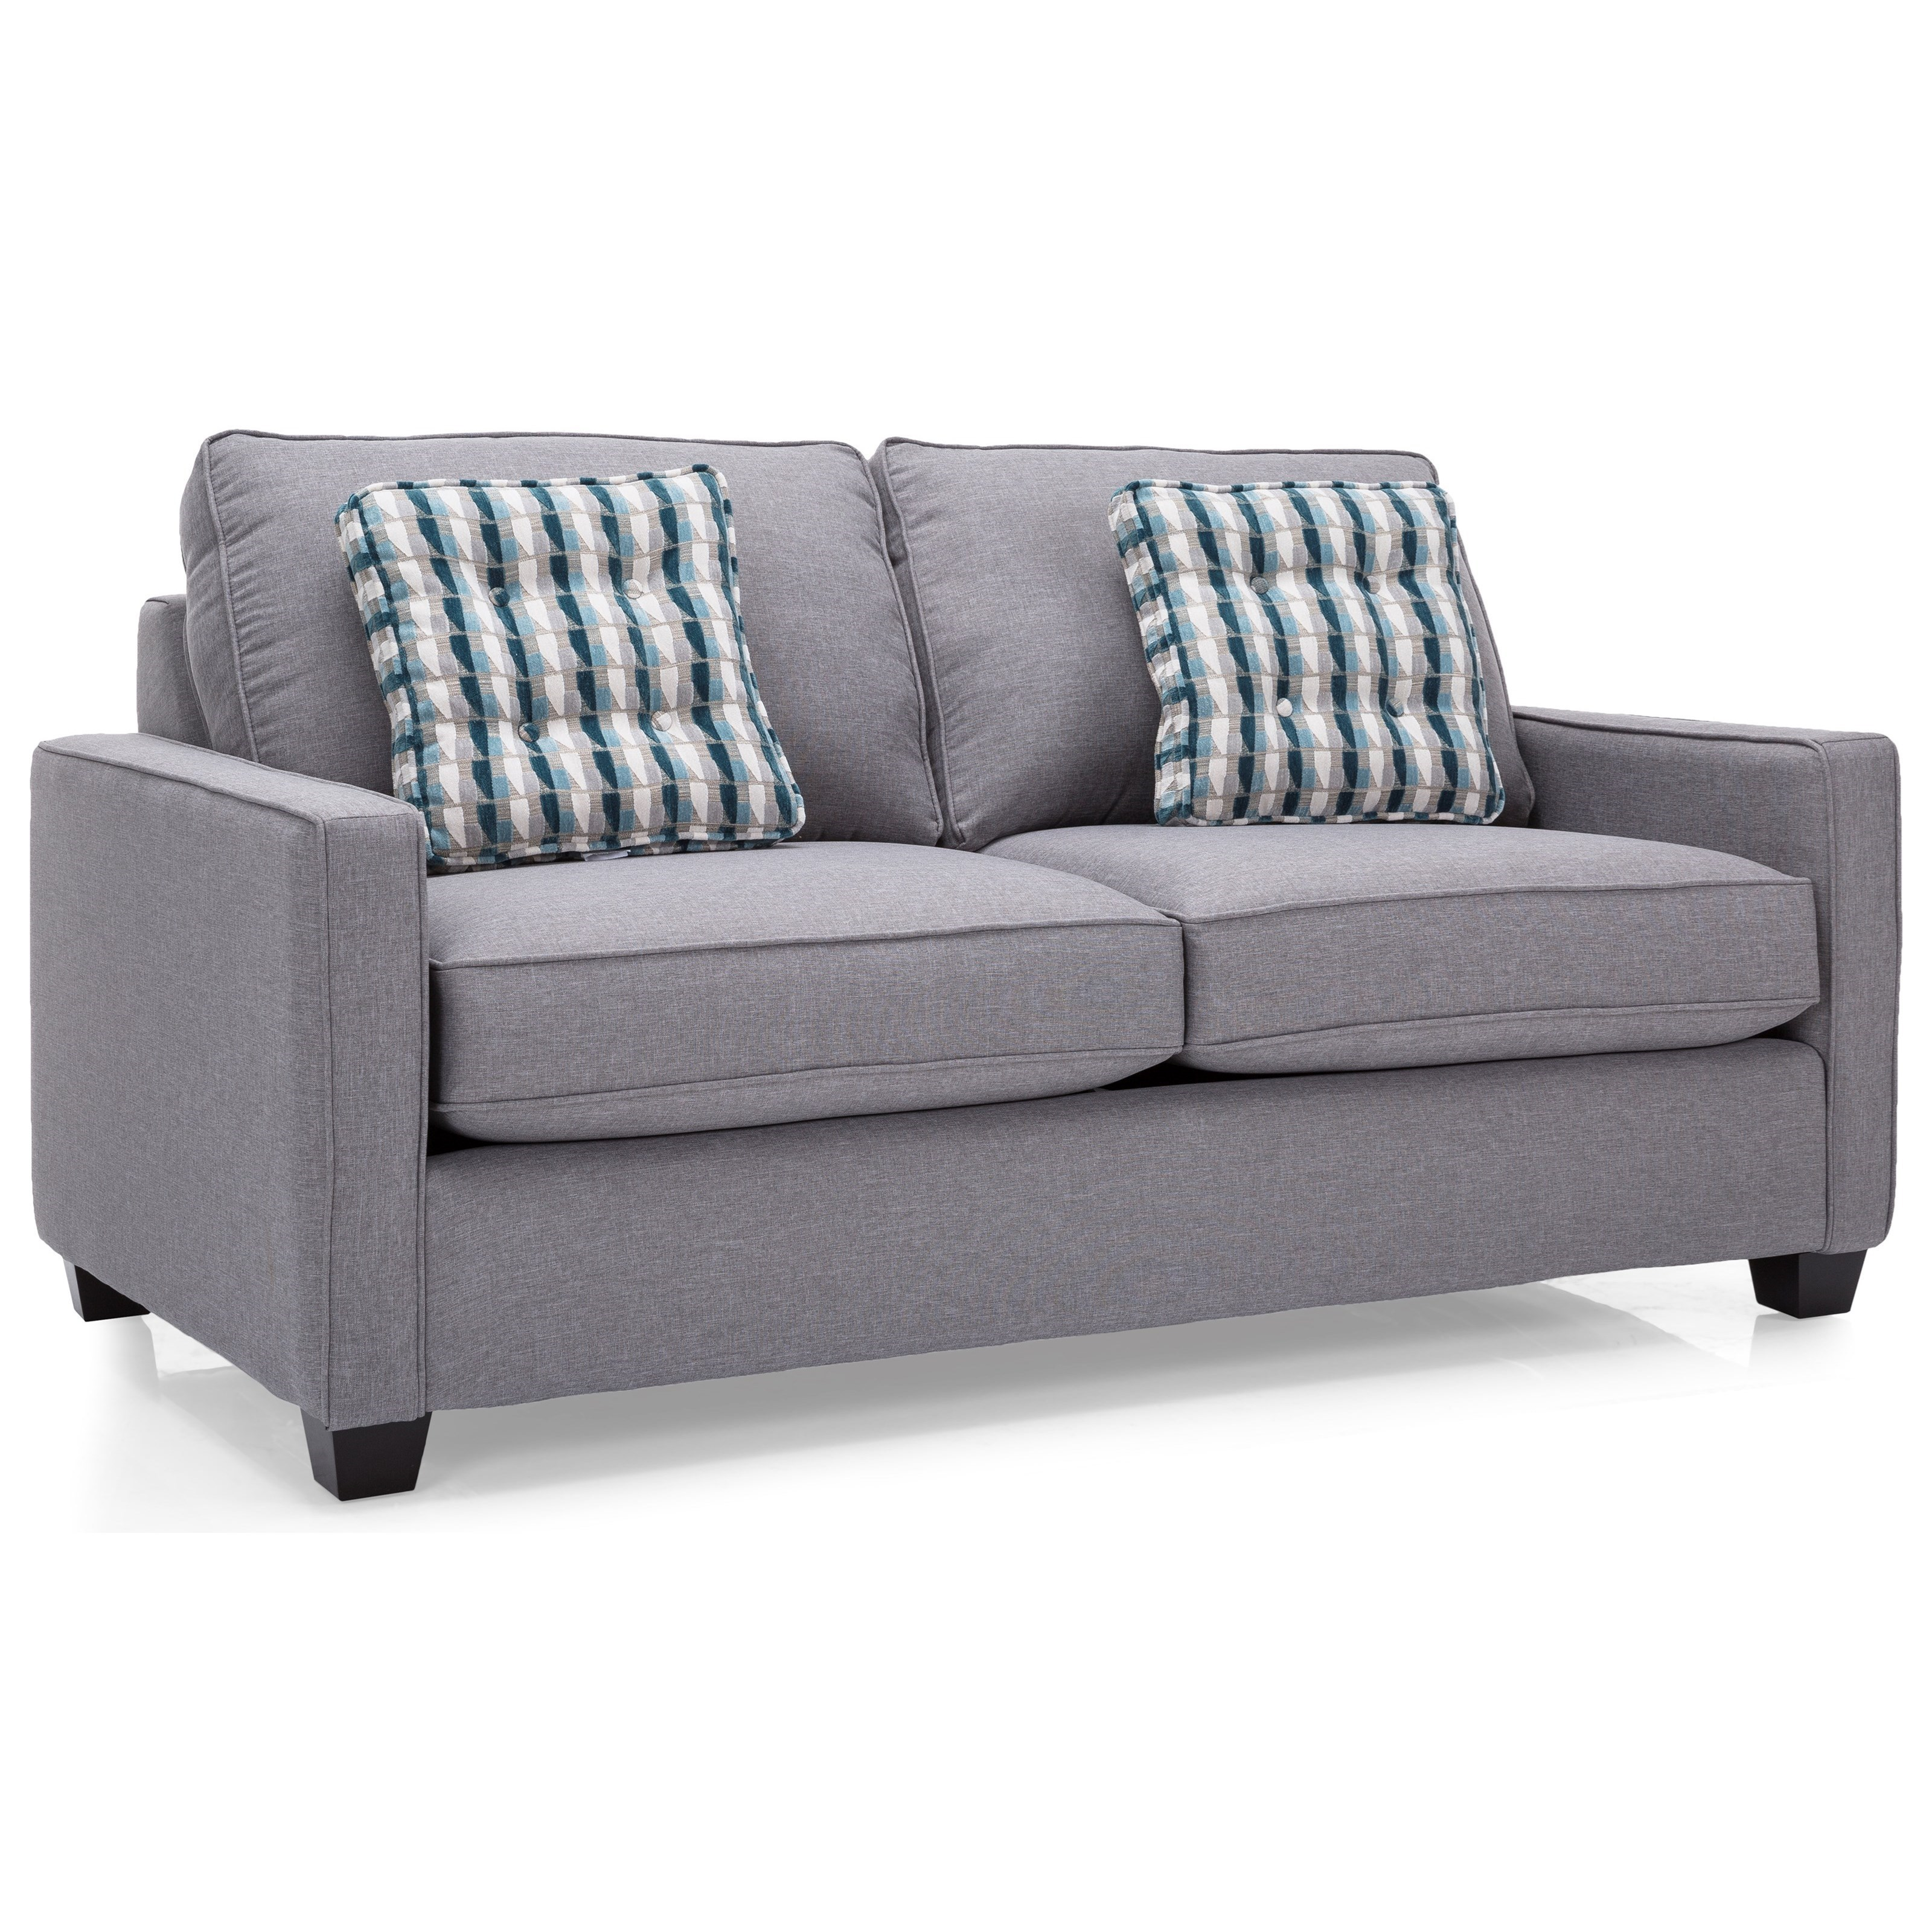 Decor Rest 2855 Double Sleeper Sofa Bed